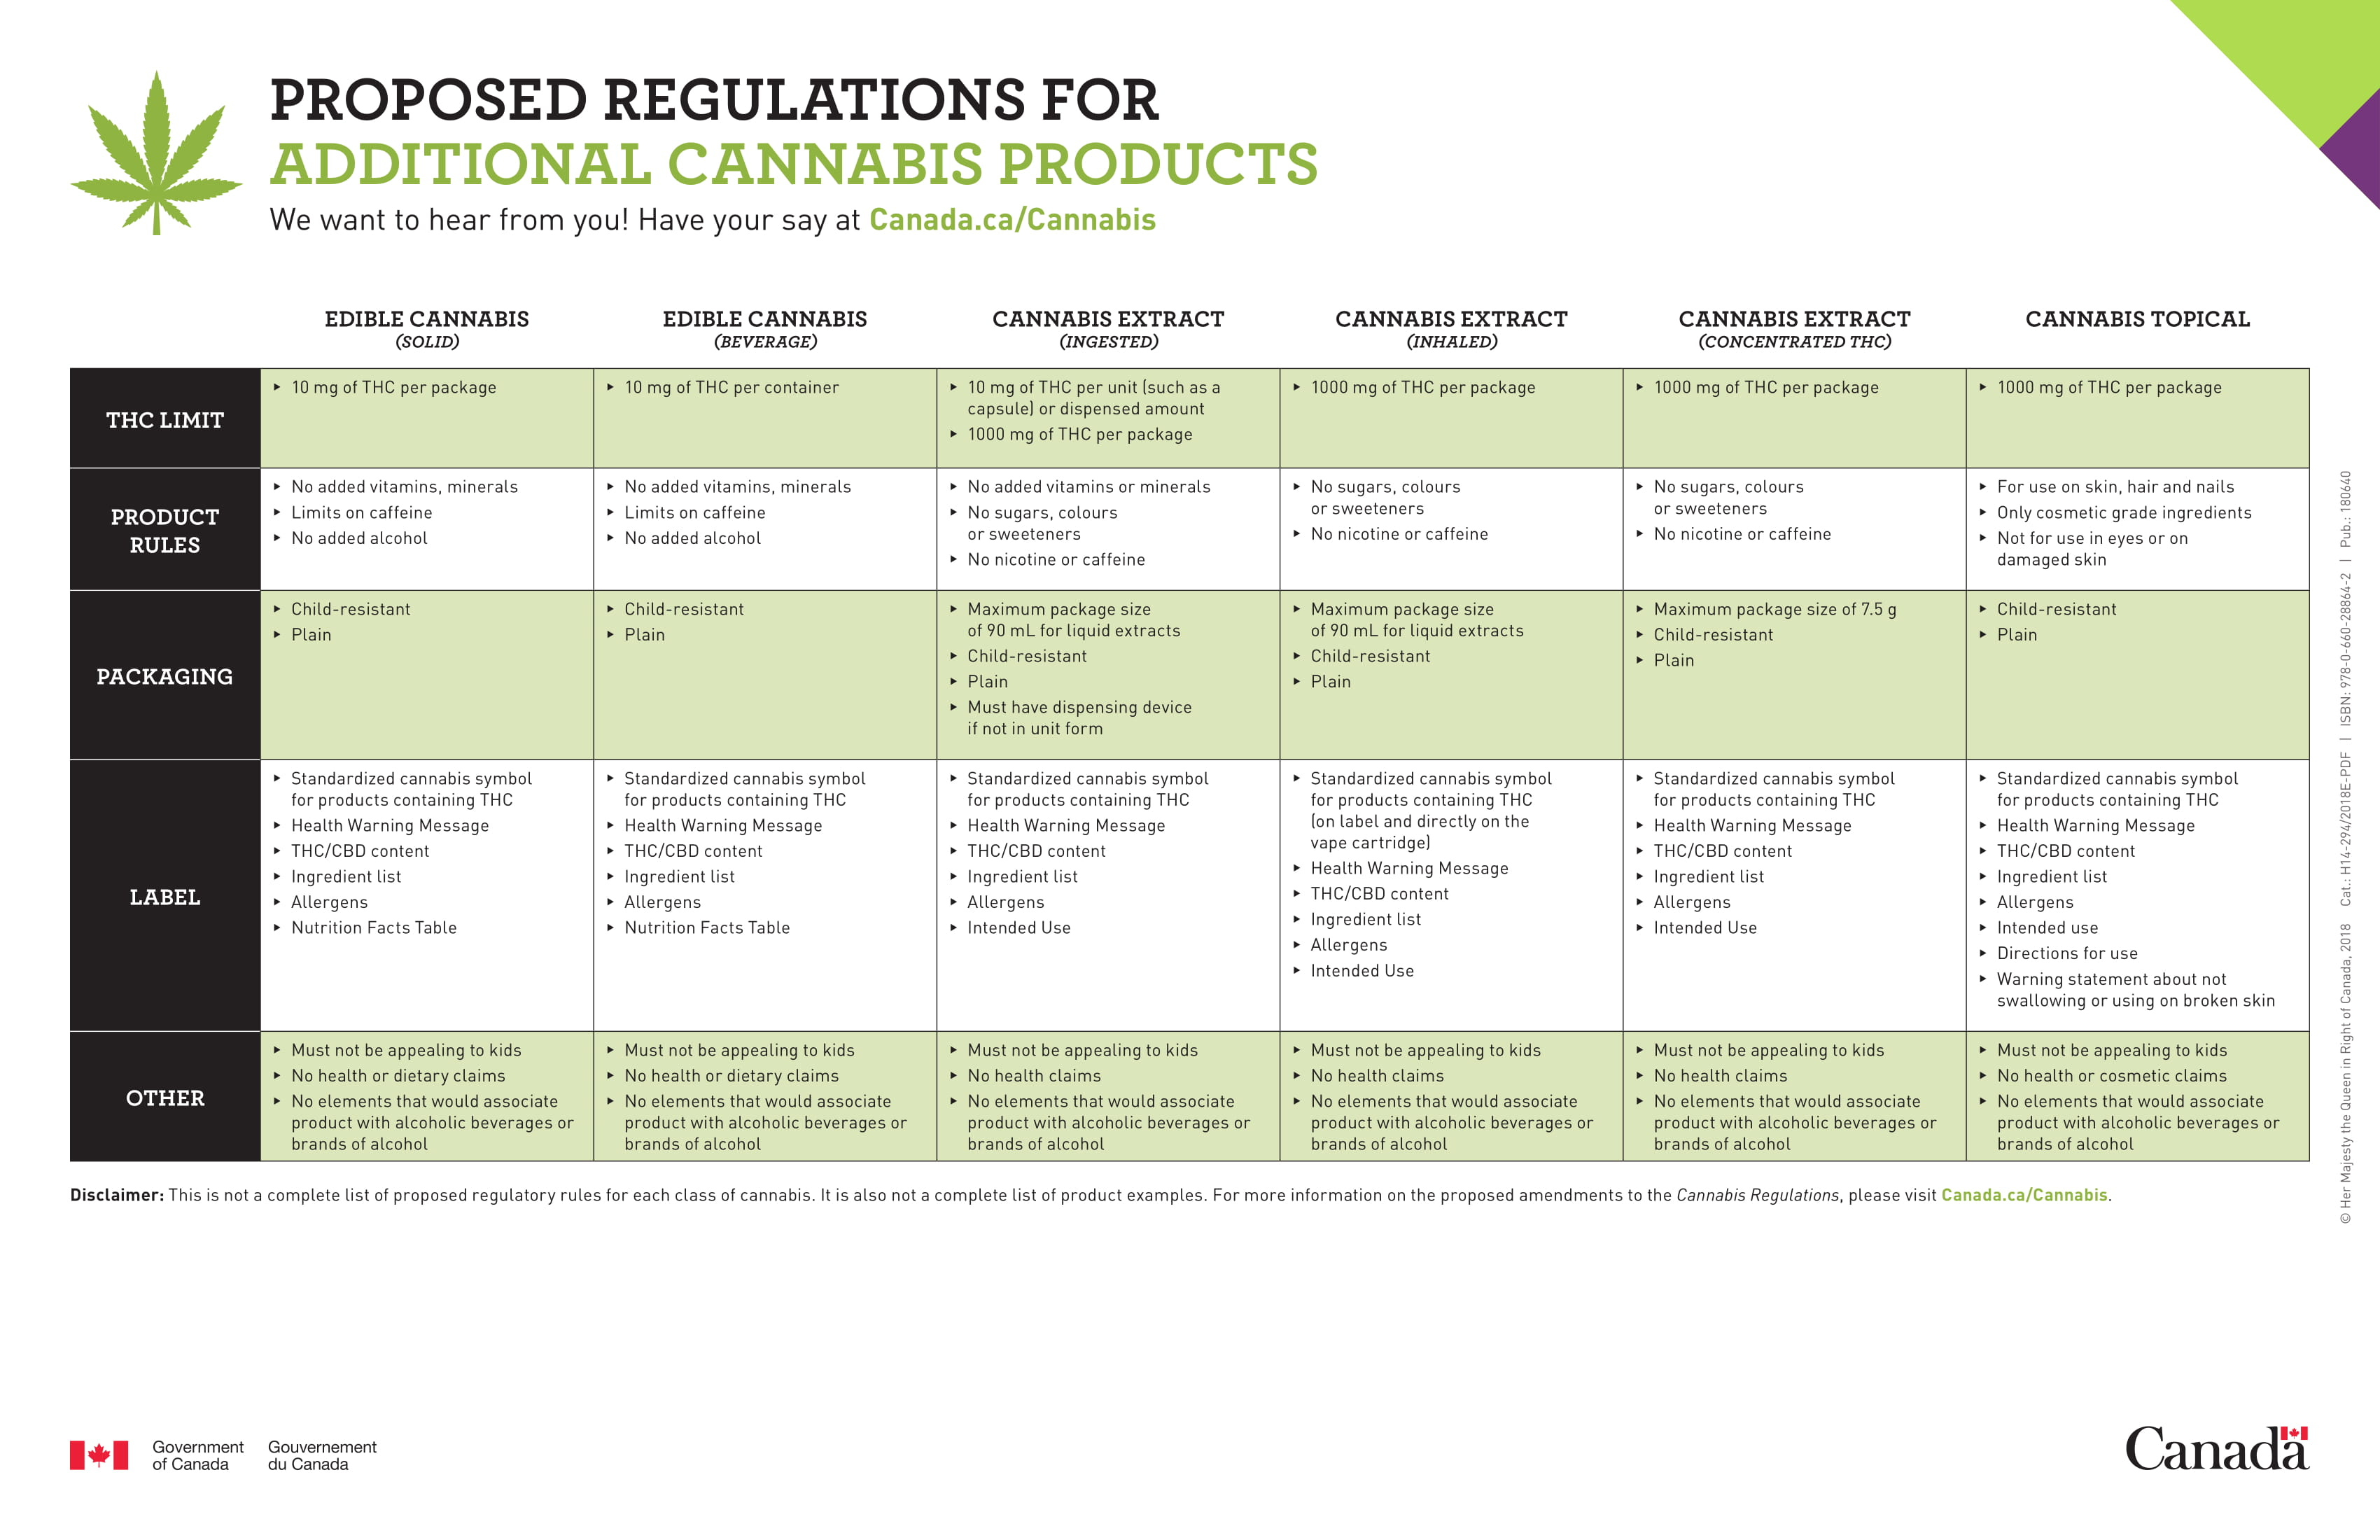 https://www.canada.ca/content/dam/hc-sc/documents/services/drugs-medication/cannabis/resources/proposed-regulations-edible-cannabis-extracts-topical-eng.pdf